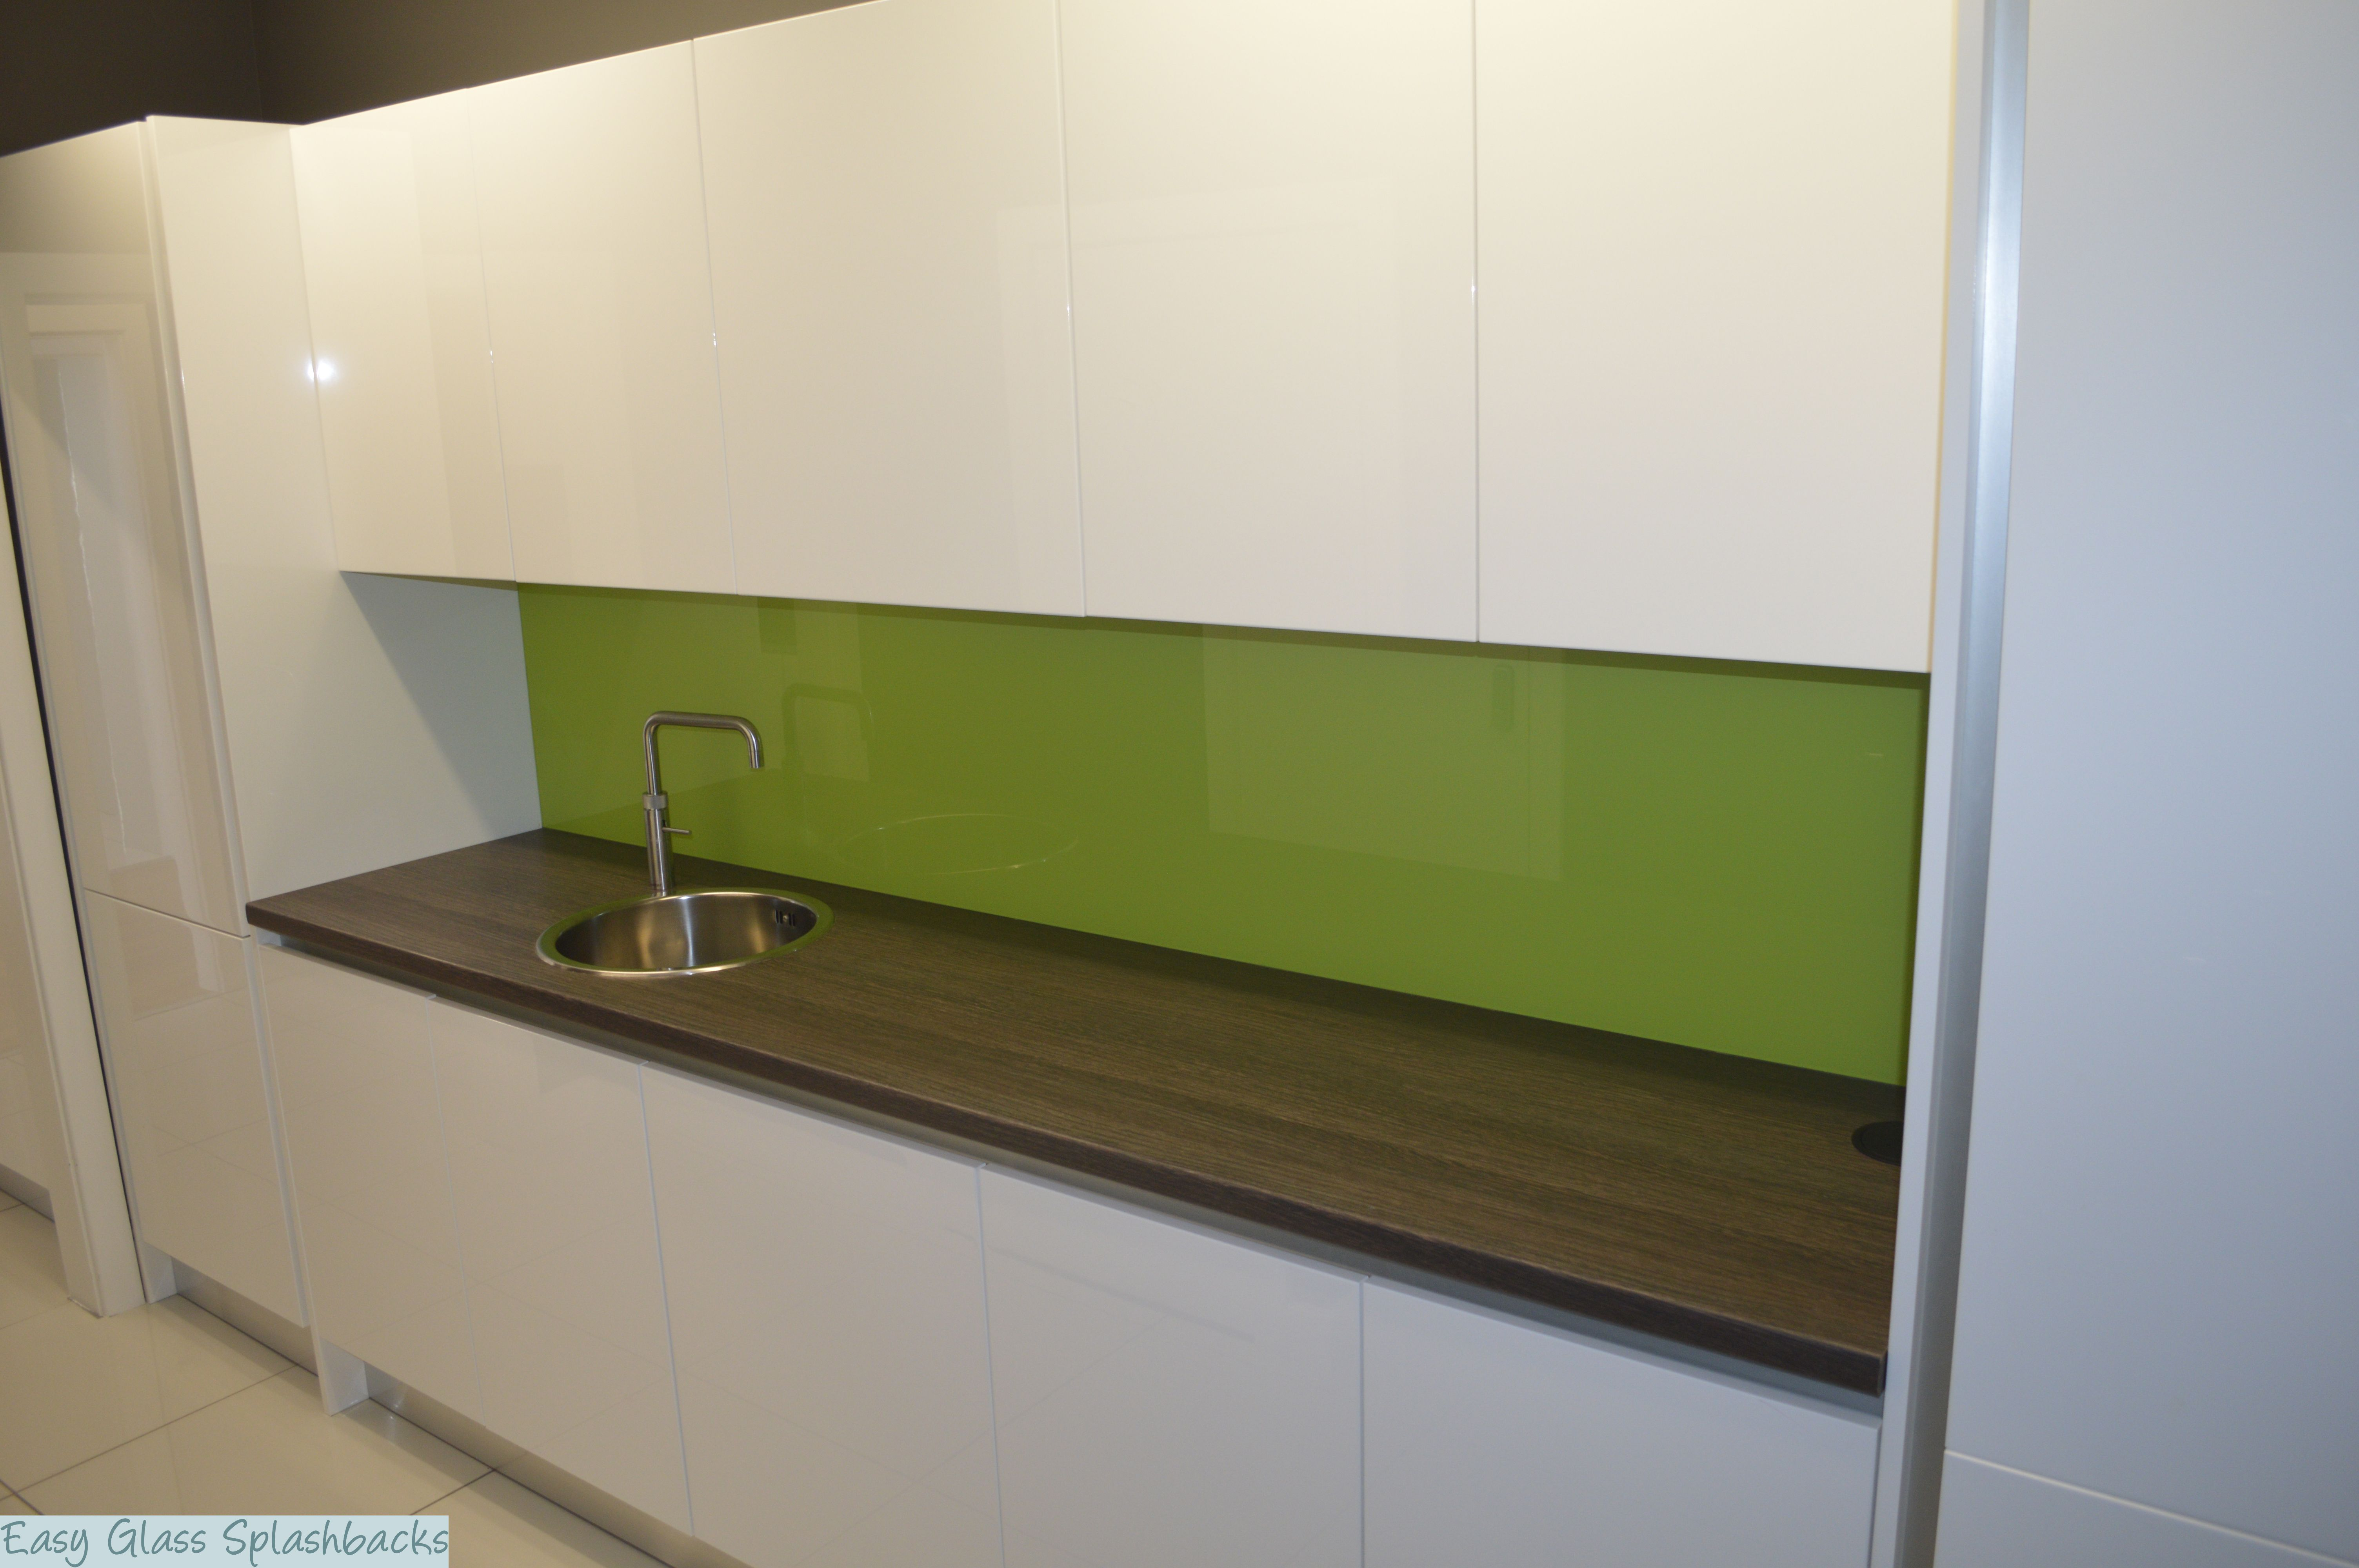 Lime Green Coloured Glass Splashback In A White Kitchen With Wooden